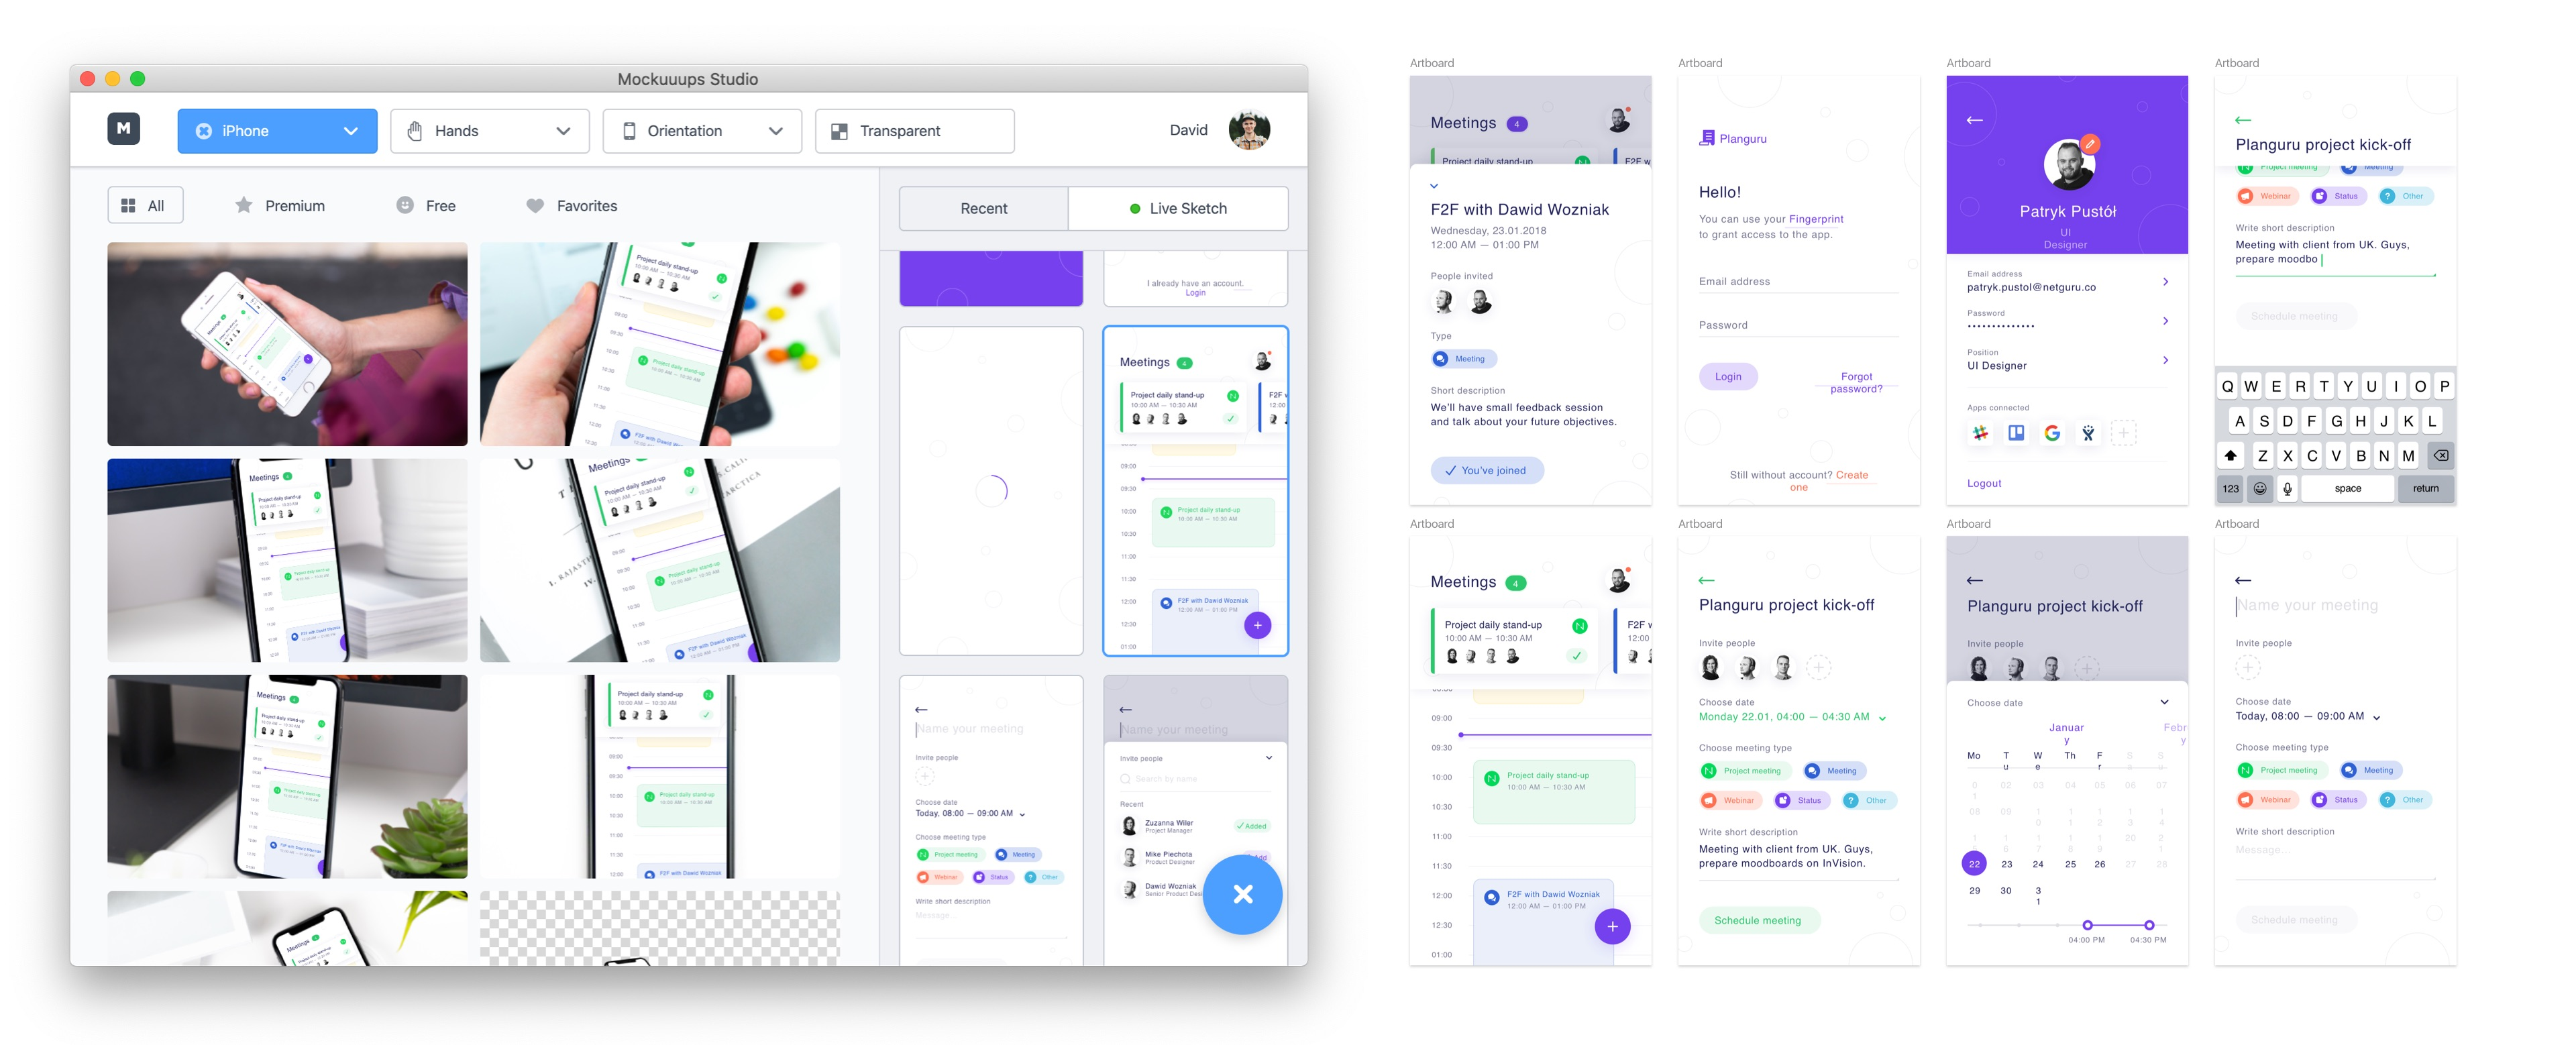 Device mockups for Sketch - Mockuuups Studio